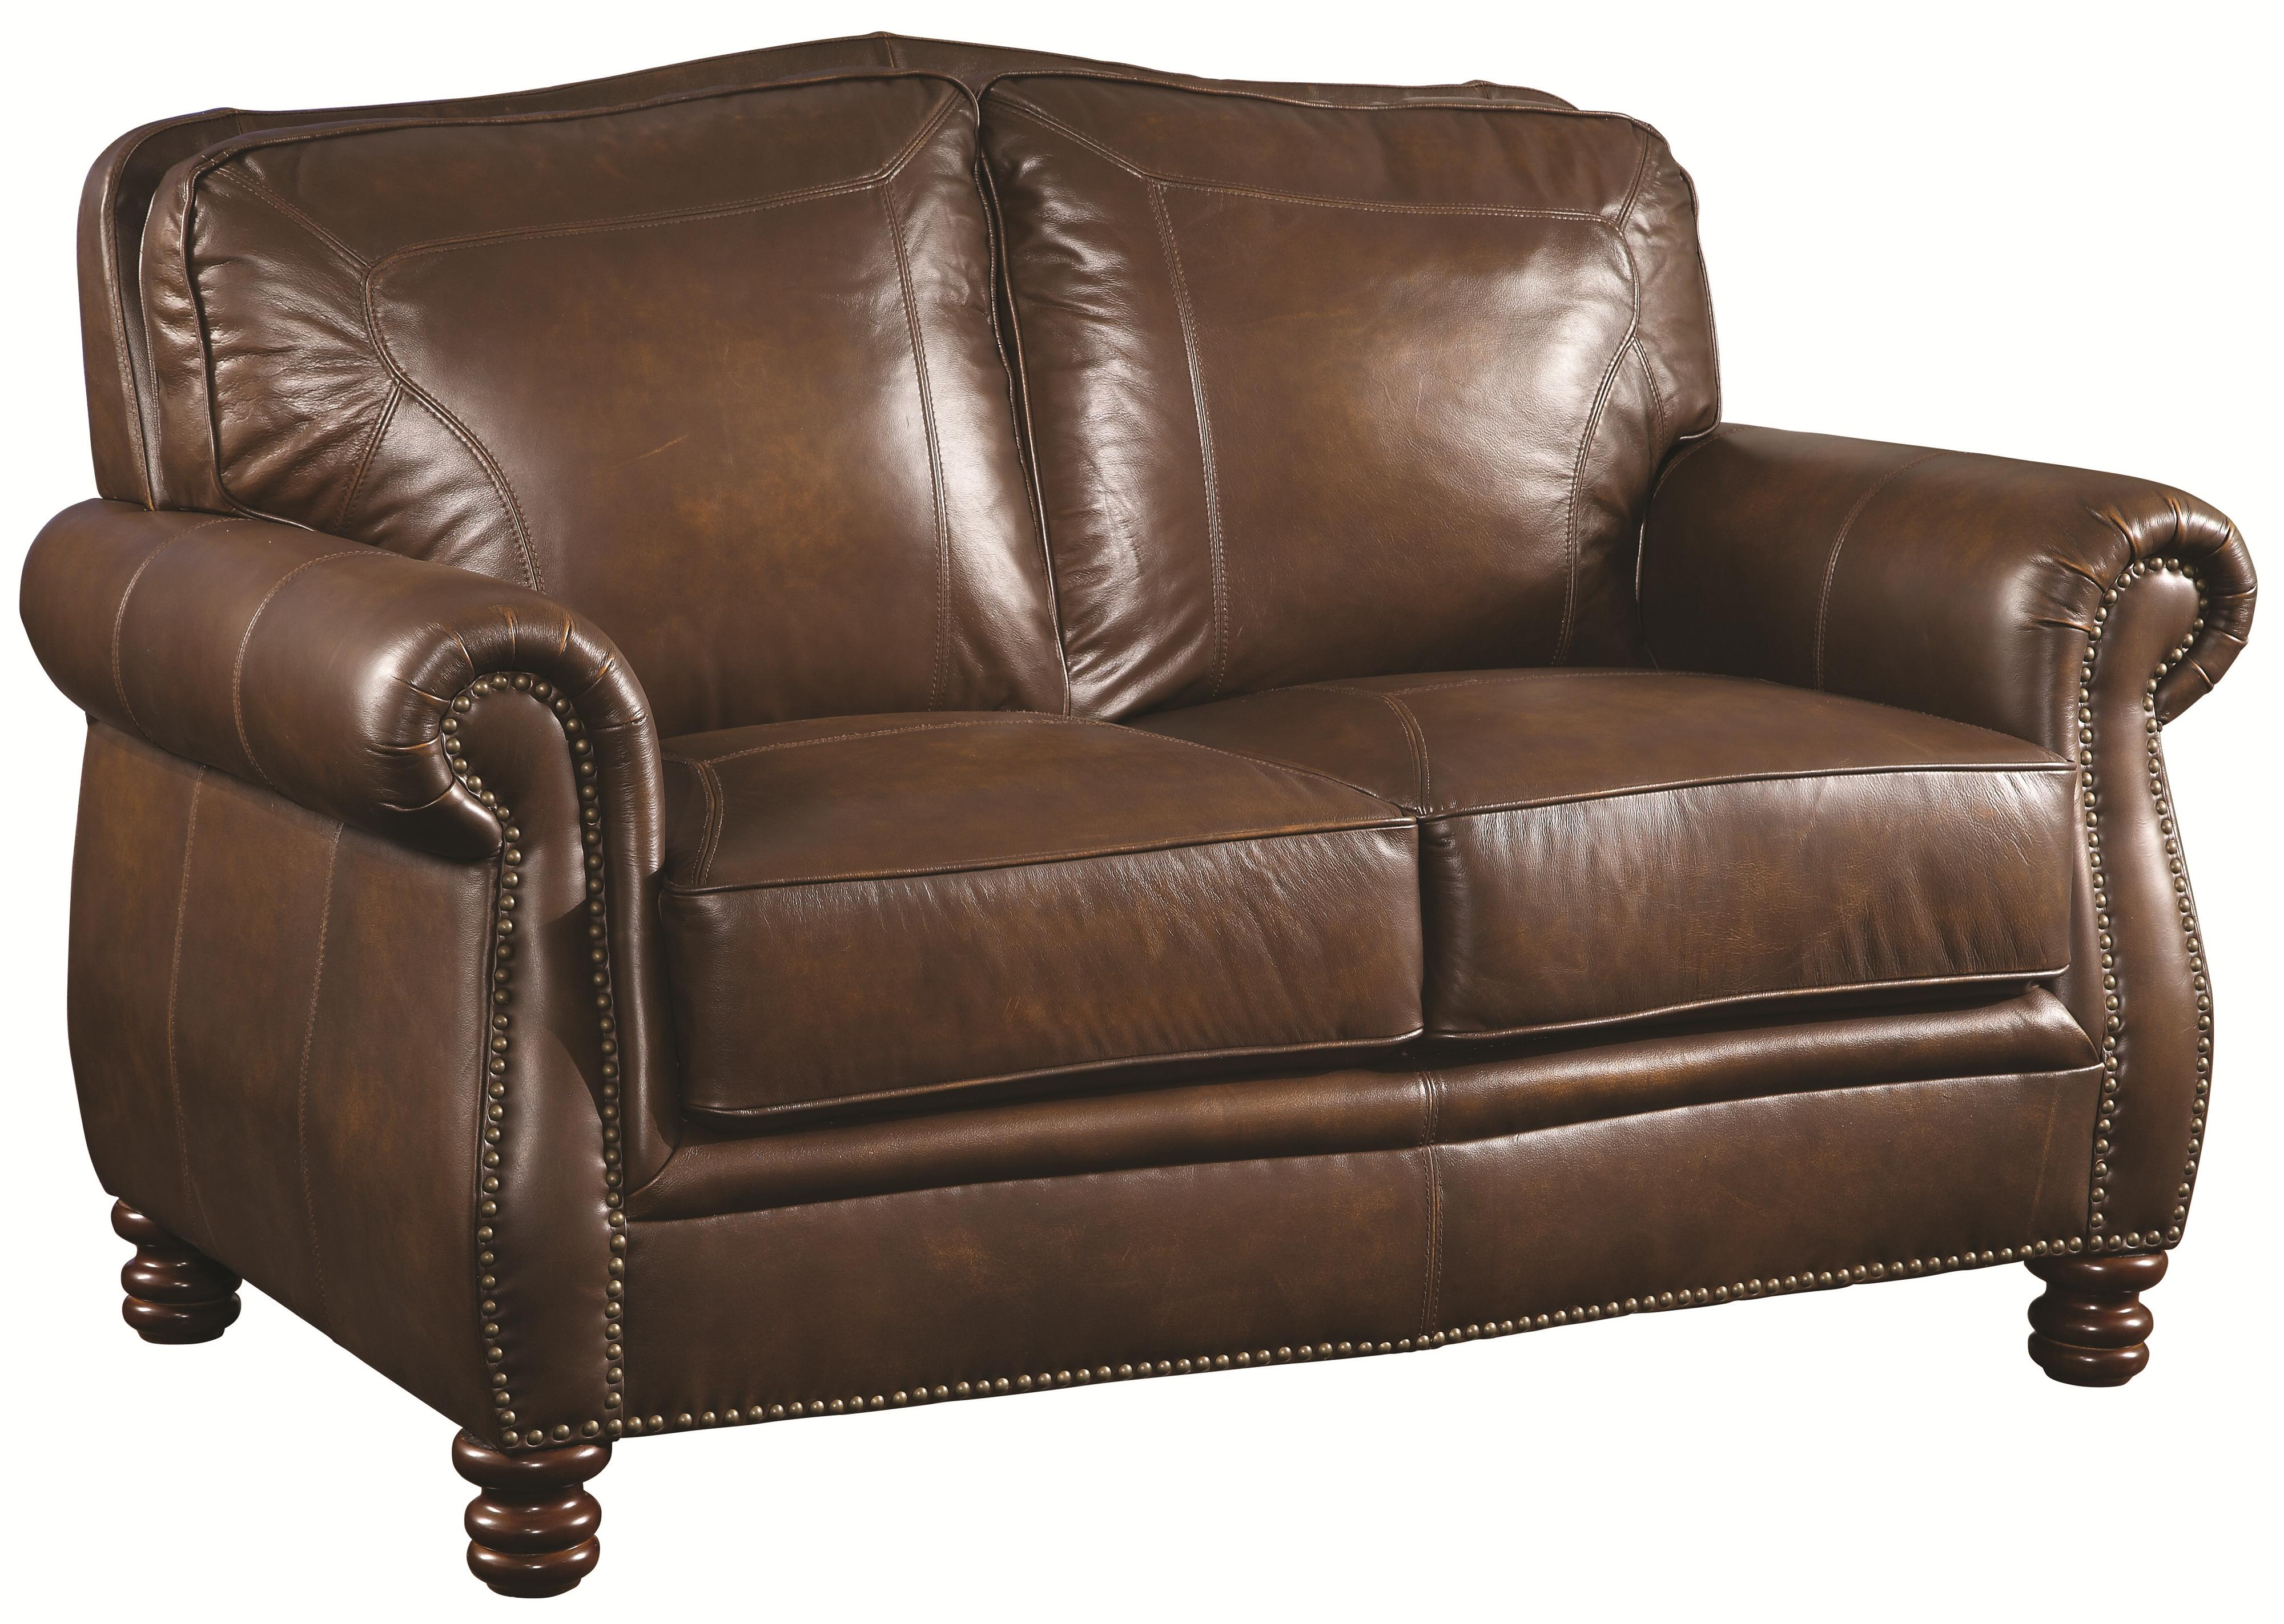 Coaster Montbrook Love Seat - Item Number: 503982-Hand Rubbed Brown